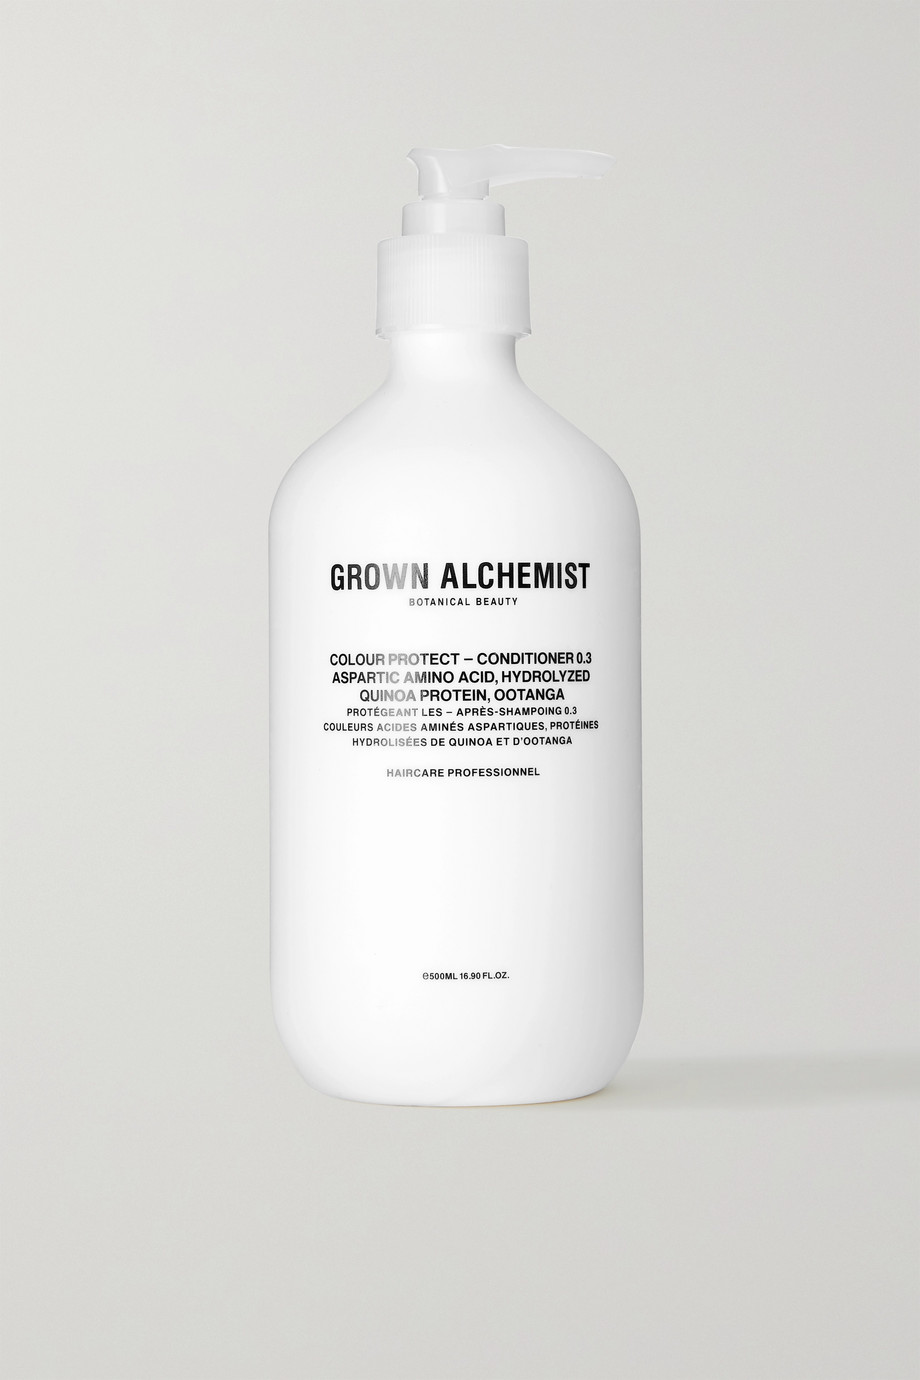 GROWN ALCHEMIST Colour Protect - Conditioner 0.3, 500ml